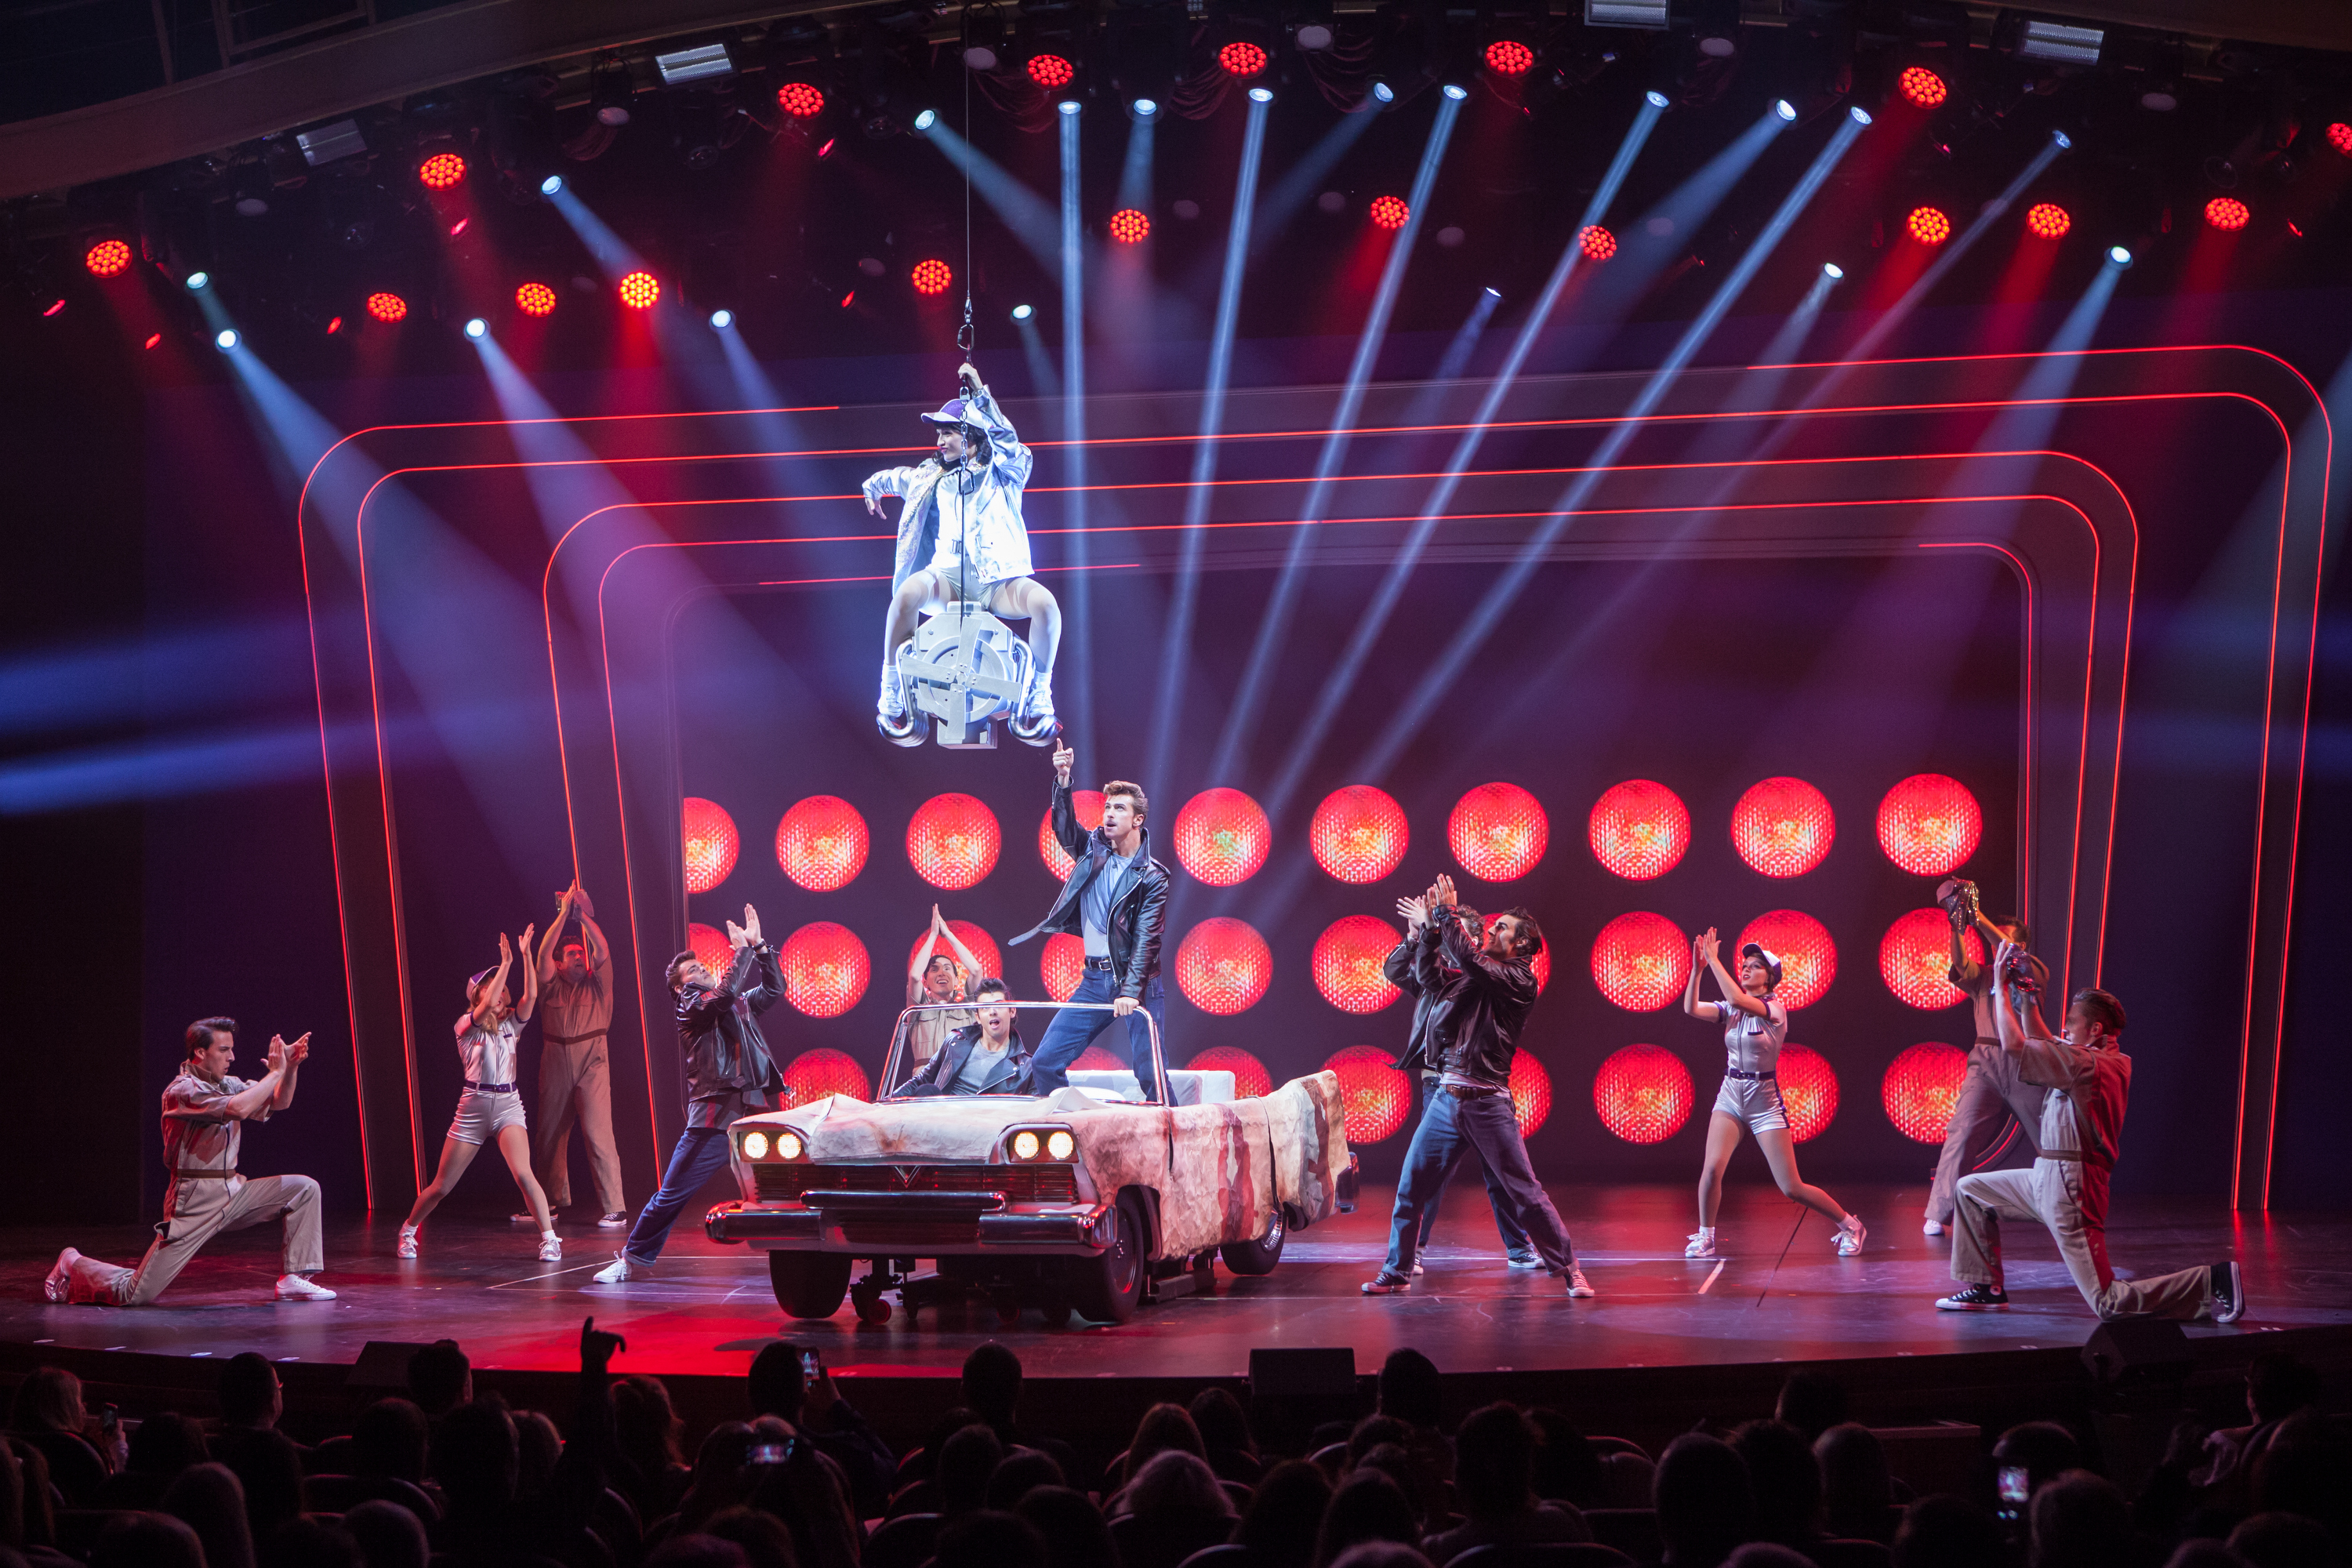 Broadway production of 'Grease' on Royal Caribbean's Harmony of the Seas (source: Royal Caribbean)